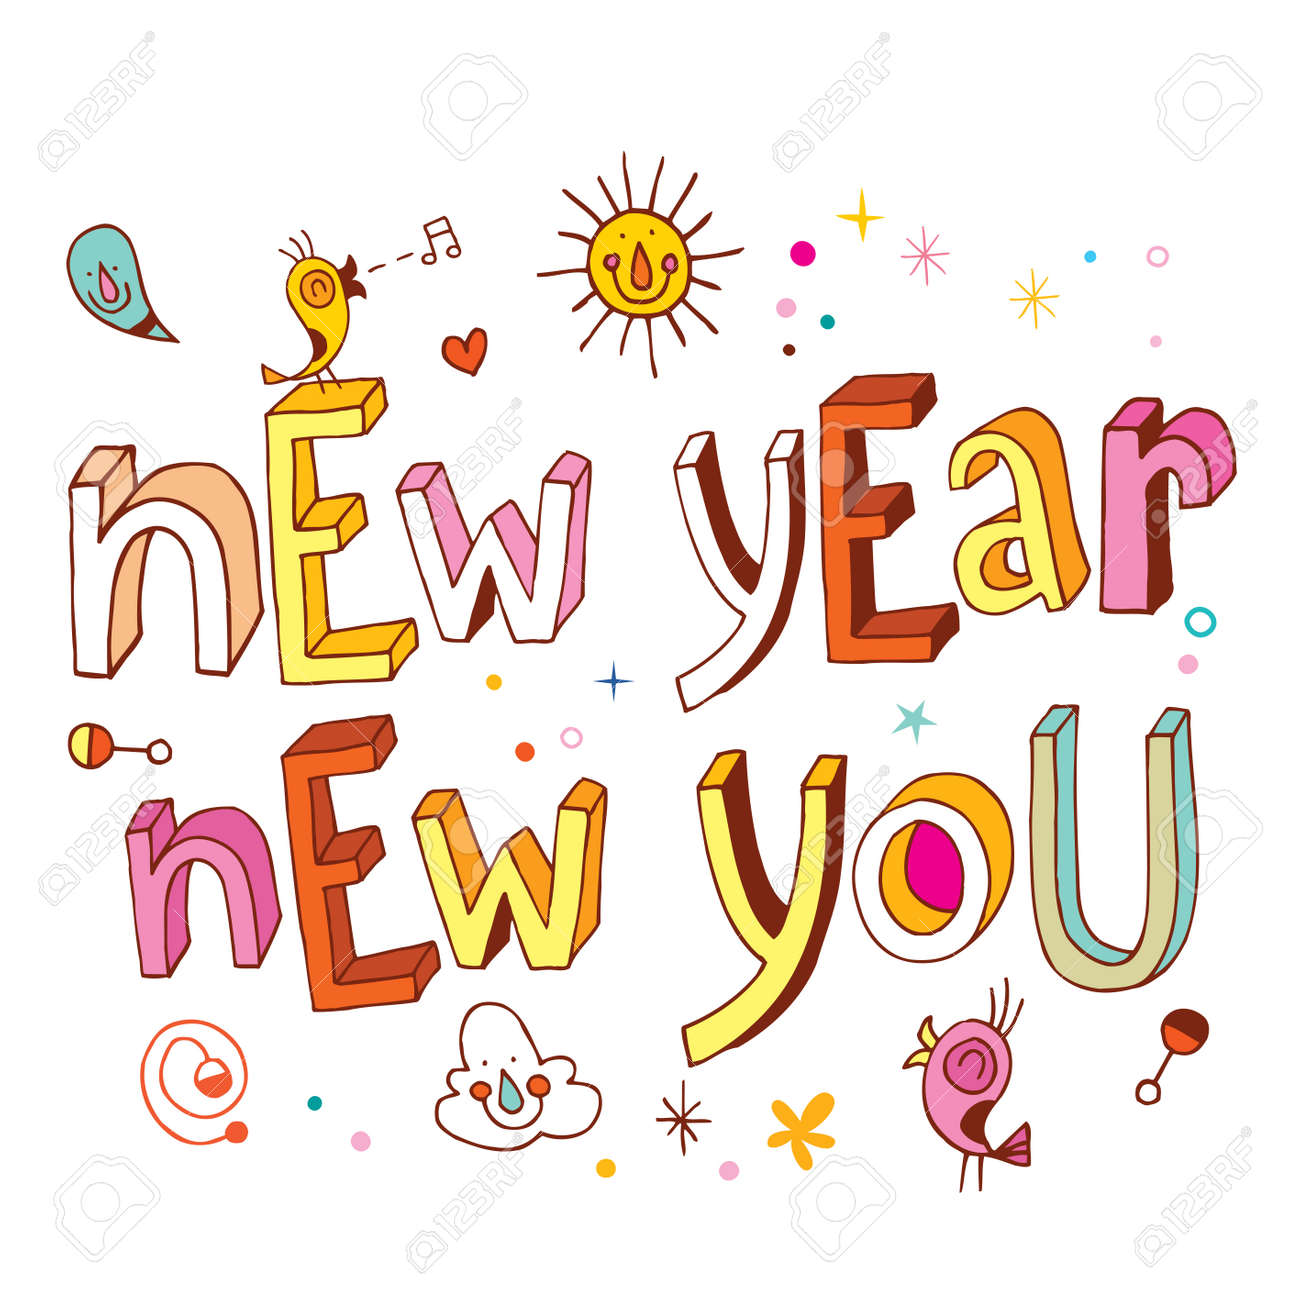 New Year new you - 54765899